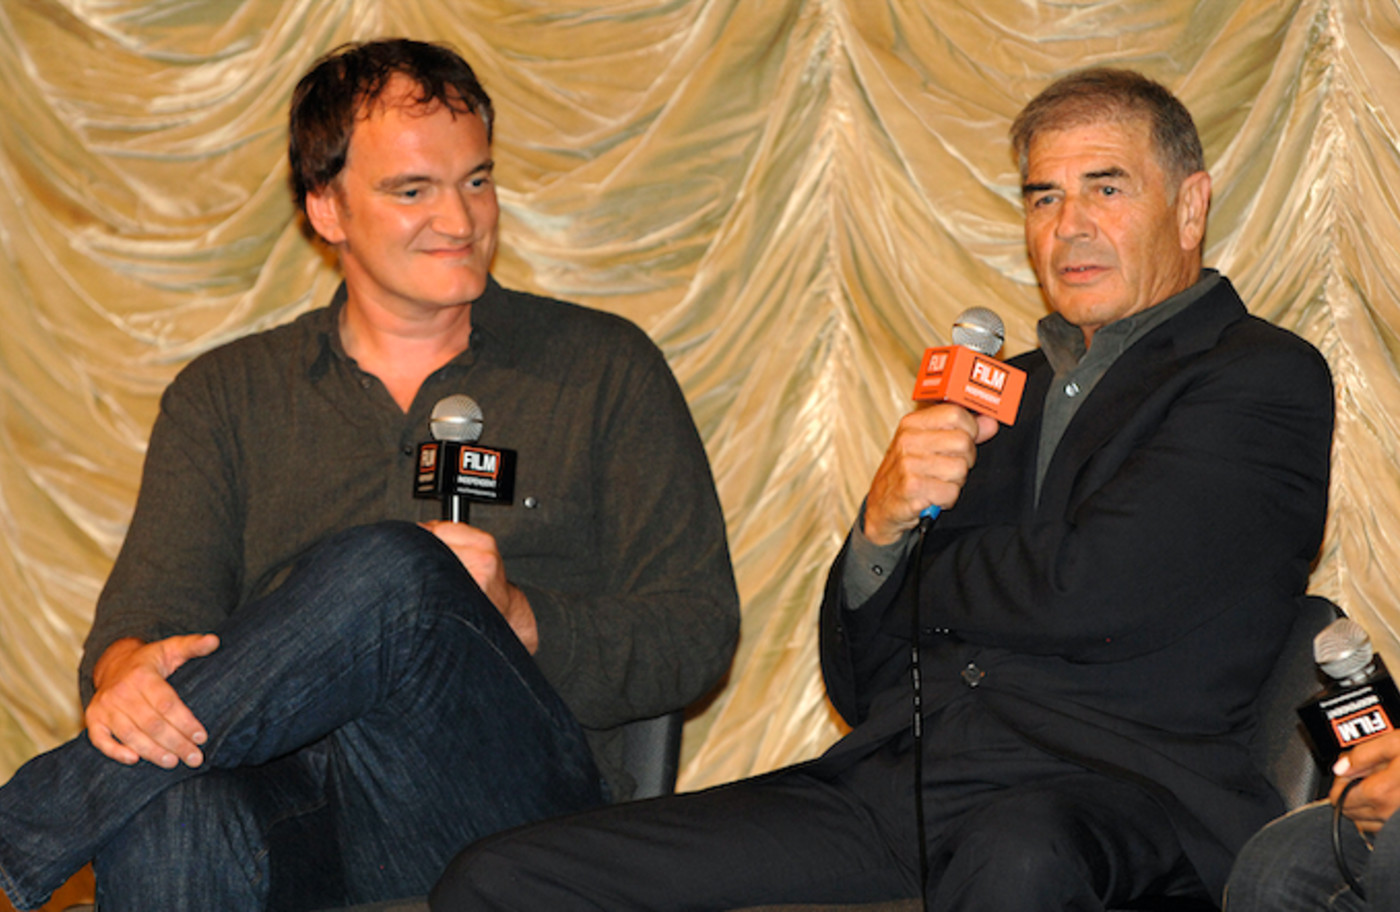 Quentin Tarantino and Robert Forster